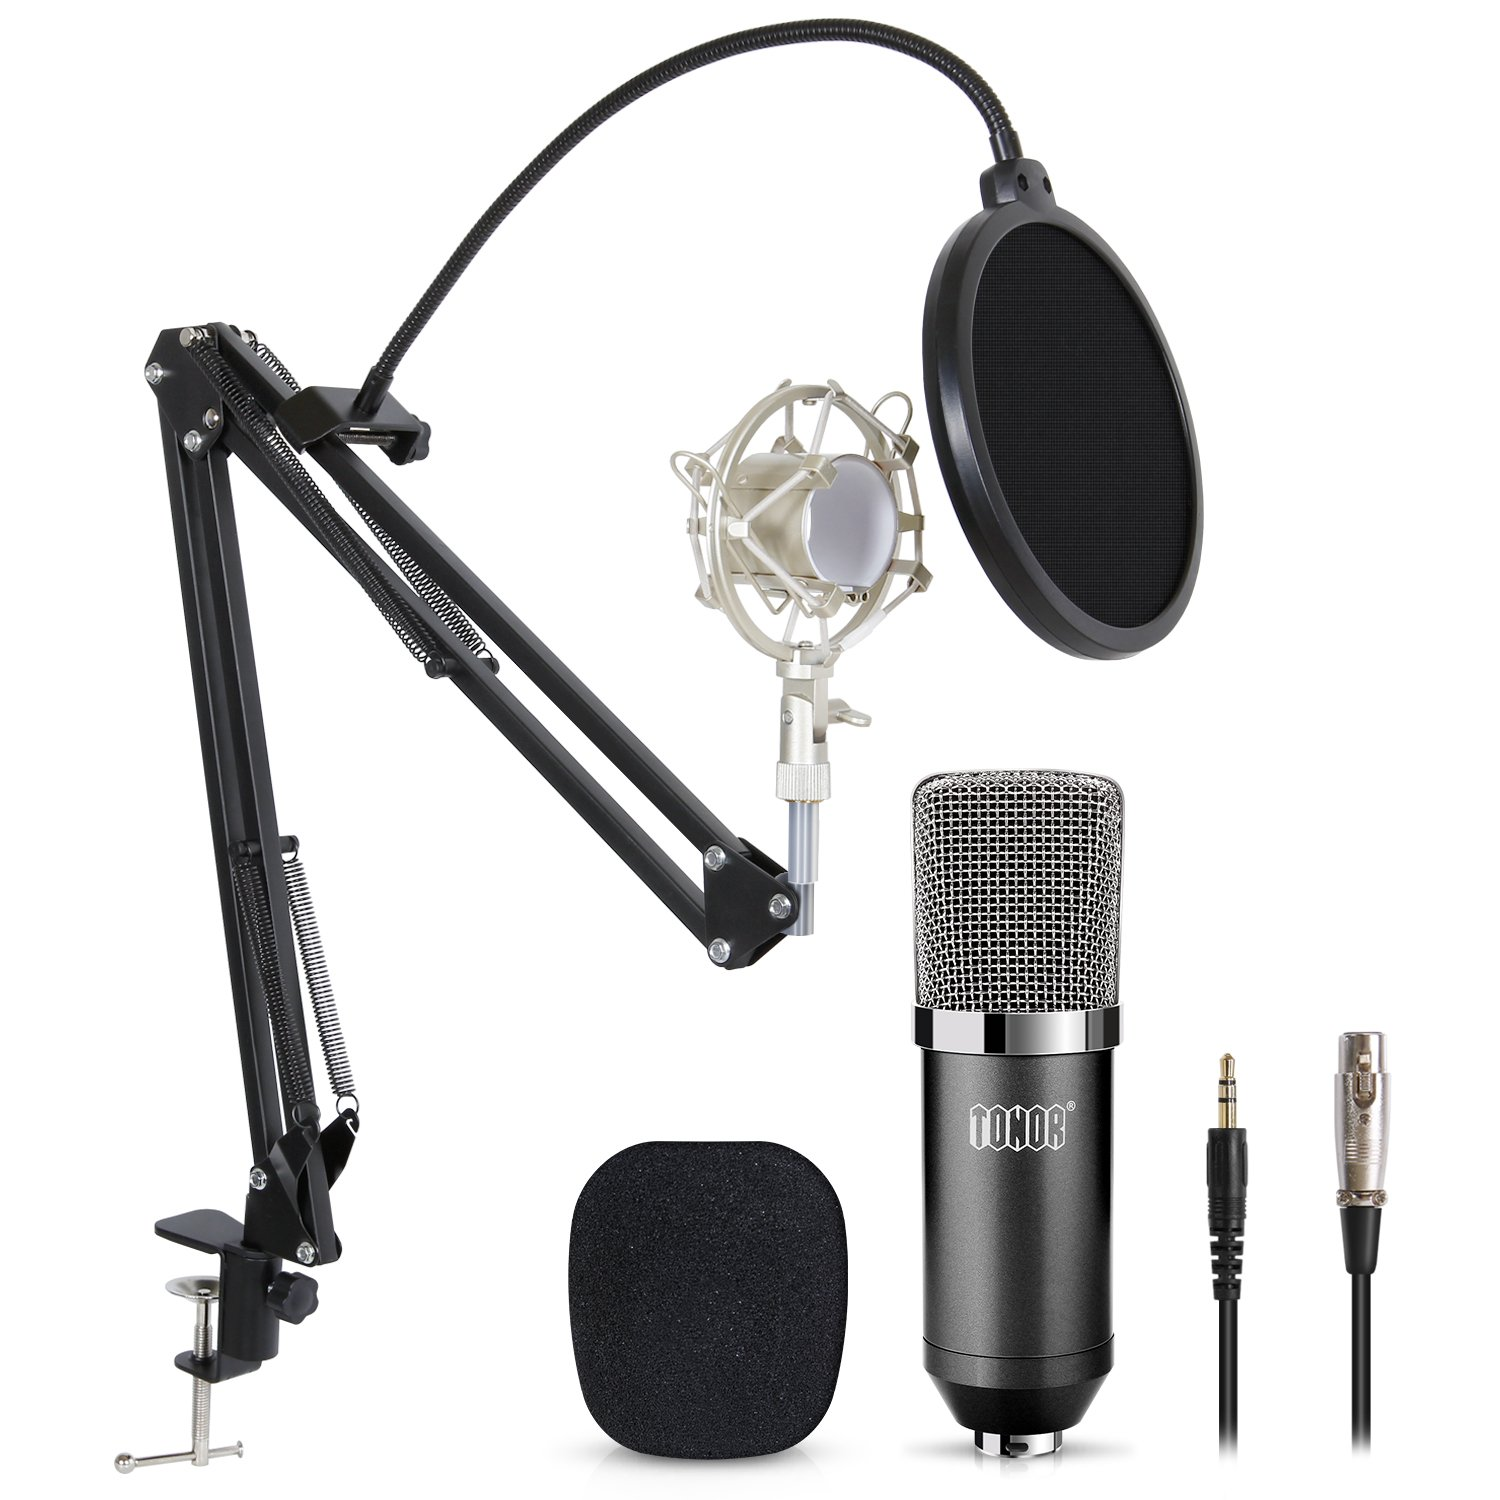 TONOR Professional Studio Condenser Microphone Computer PC Microphone Kit with 3.5mm XLR/Pop Filter/Scissor Arm Stand/Shock Mount for Professional Studio Recording Podcasting Broadcasting, Black by TONOR